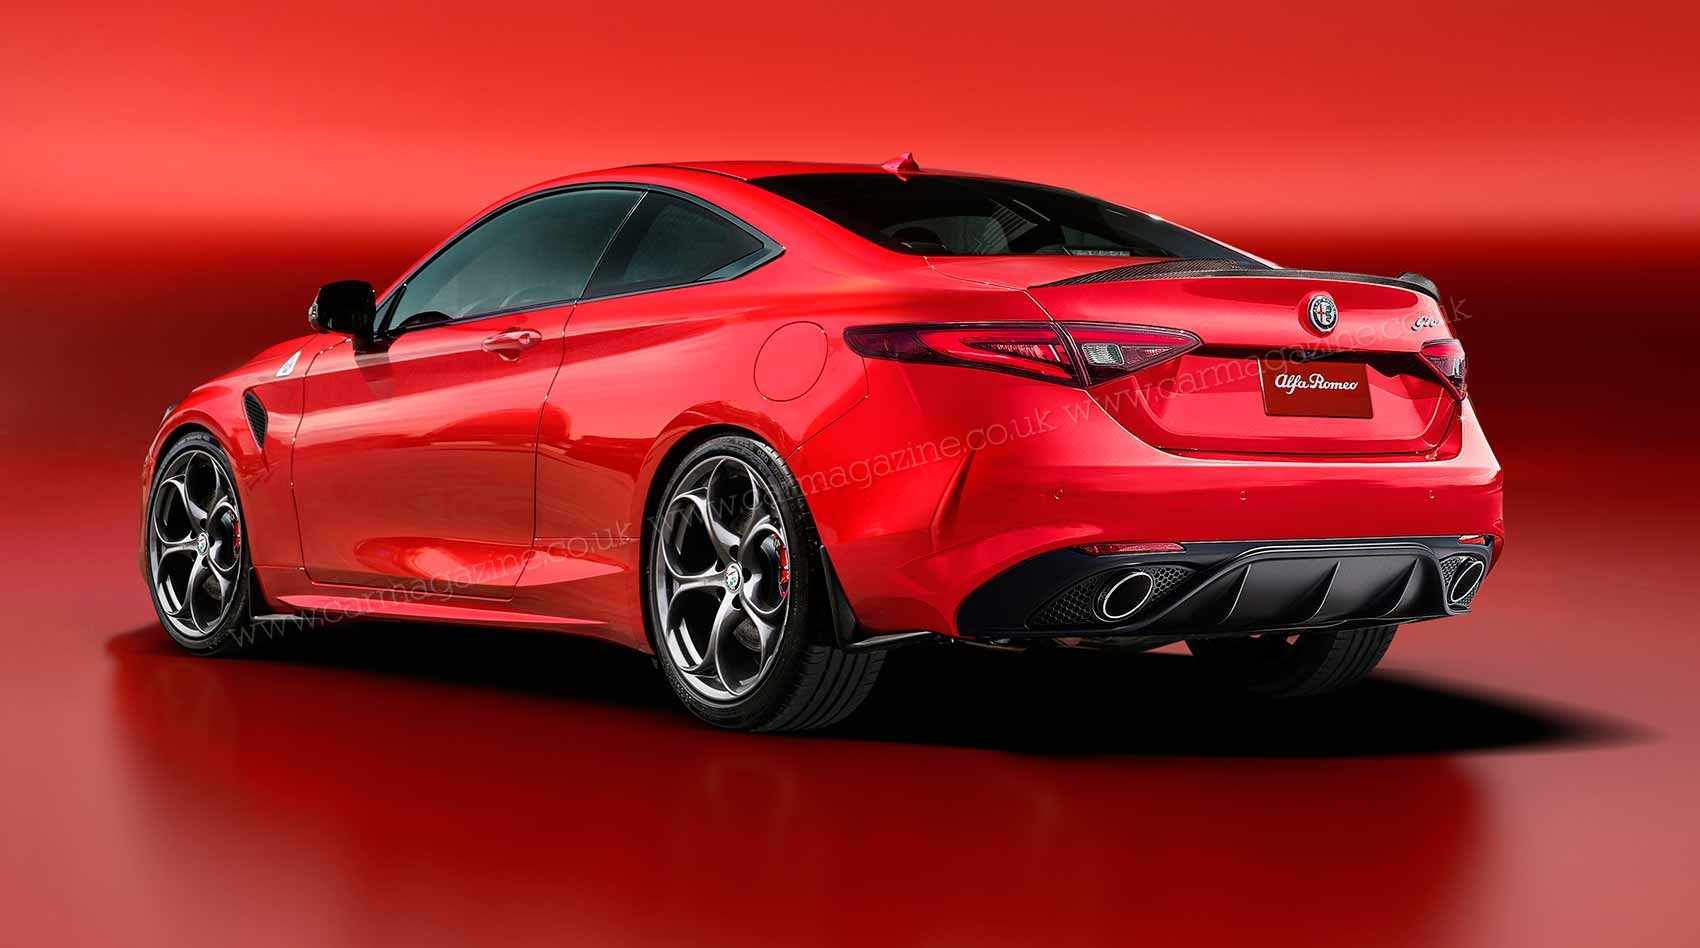 The New Alfa Romeo Ausmotive 187 Alfa Romeo Shows The New Giulia New Alfa Romeo Giulia Images